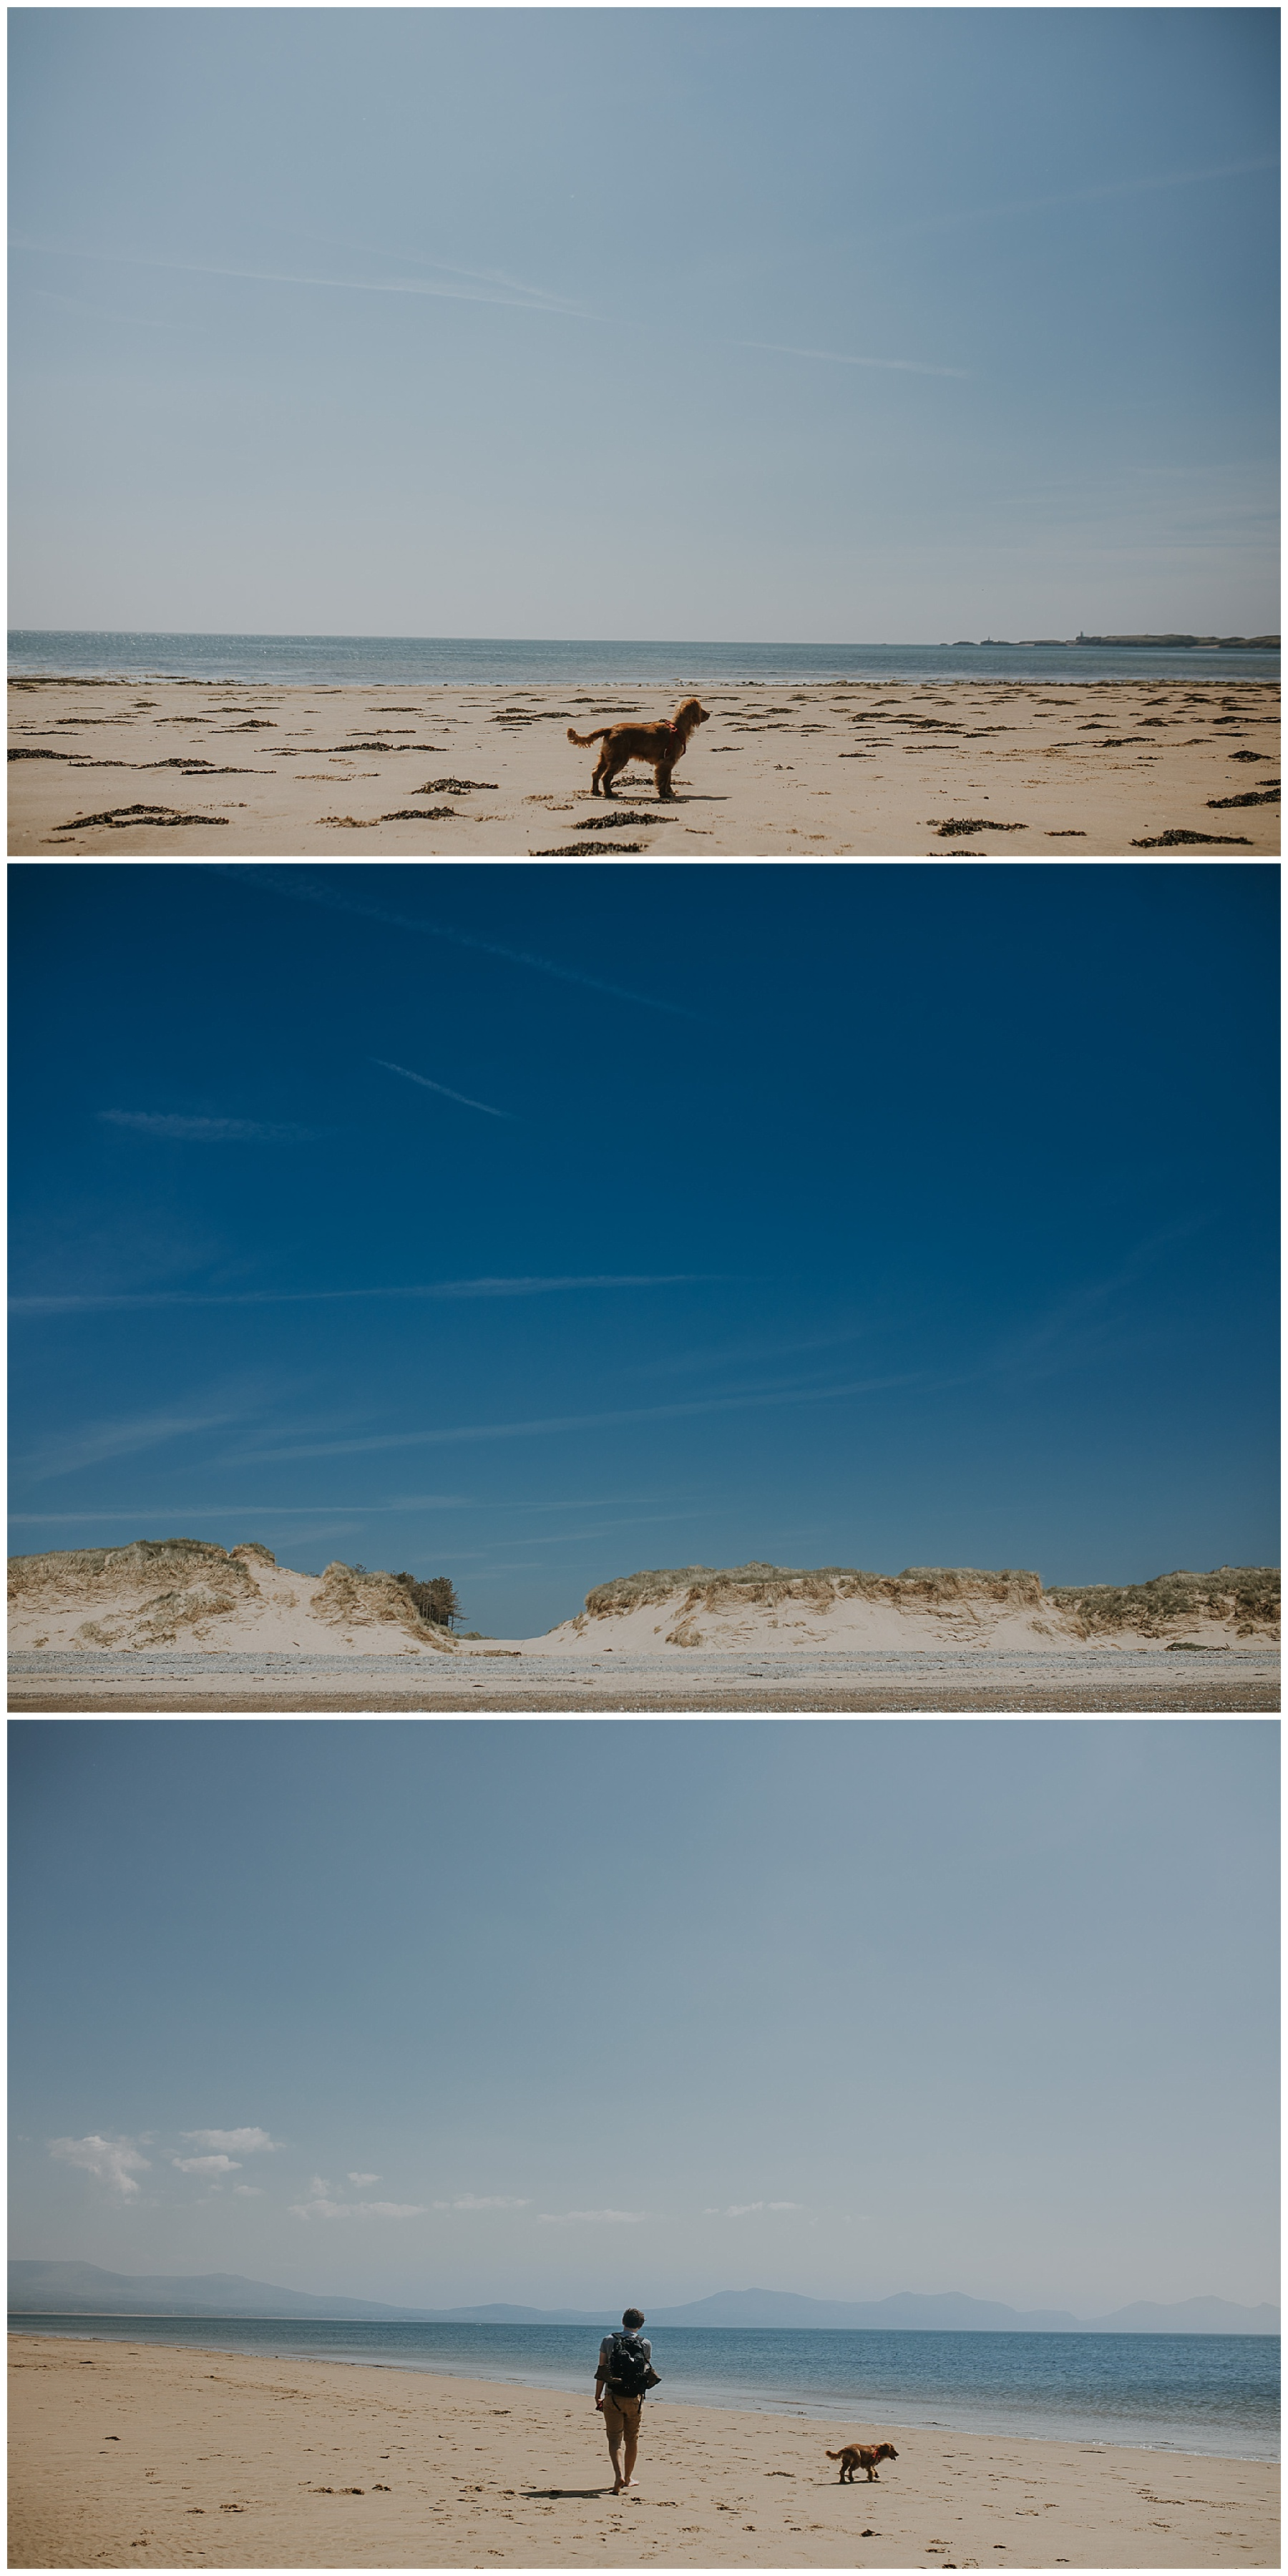 a dog watches over the sea